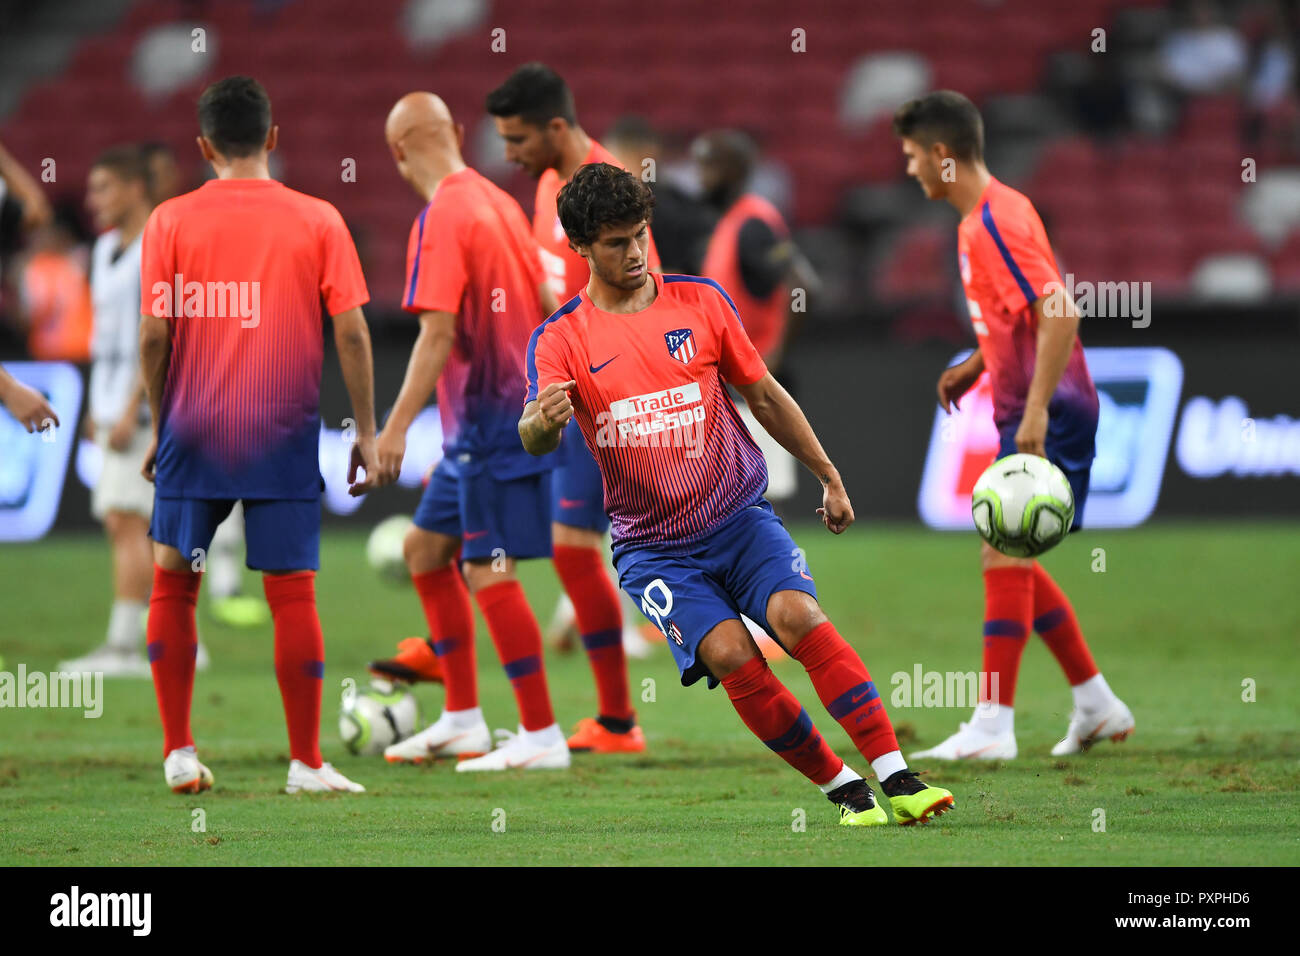 Kallang-Singapore-30Jul2018:Roberto olabe #30 player of Atletico madrid warm up during icc2018 between Atletico madrid against at paris saint-german a Stock Photo